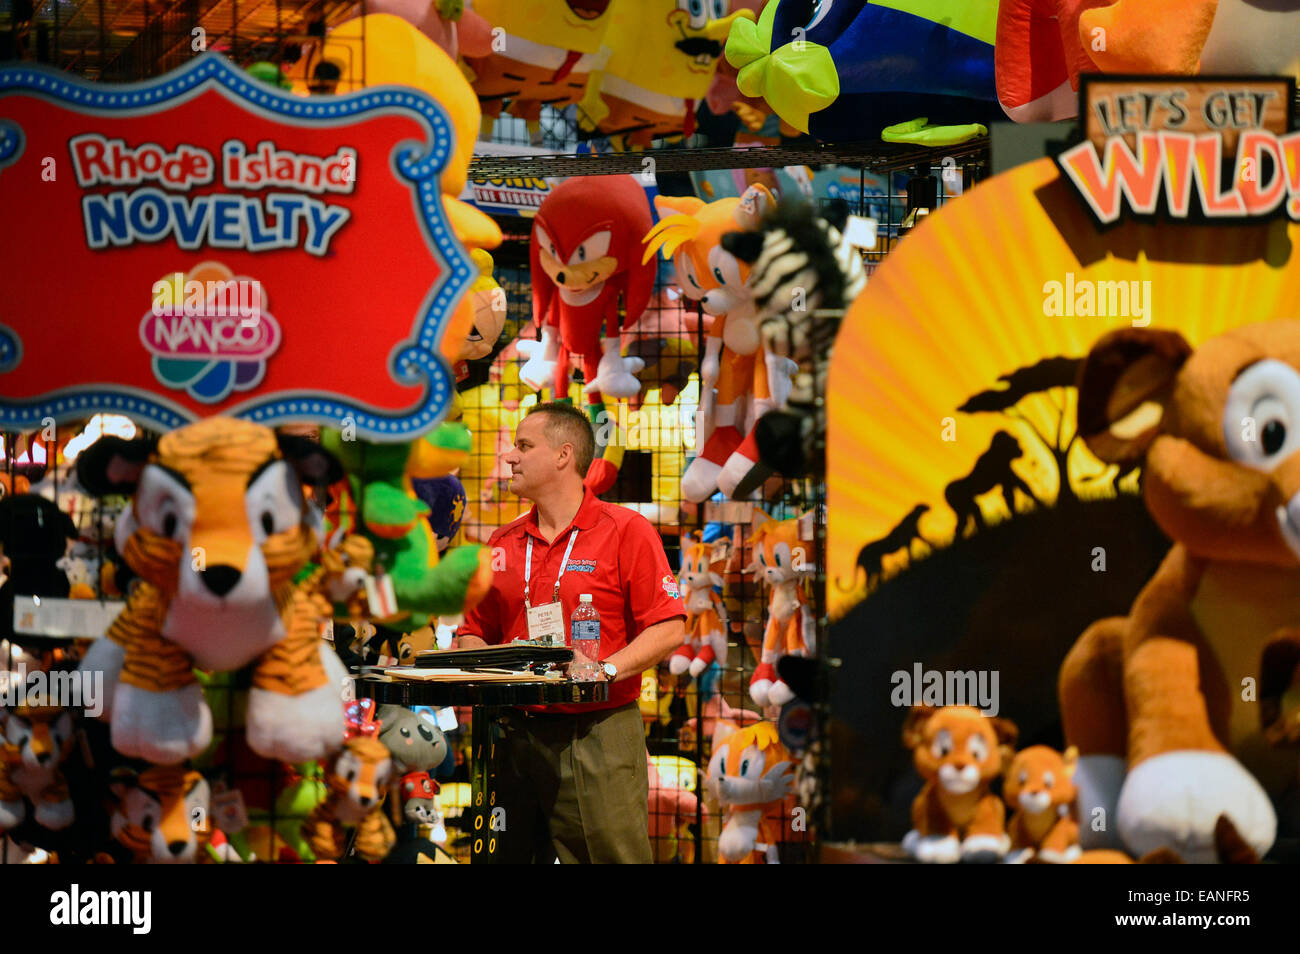 Exhibition Stands In Orlando : Orlando us. 18th nov 2014. a work personnel stands at his stock